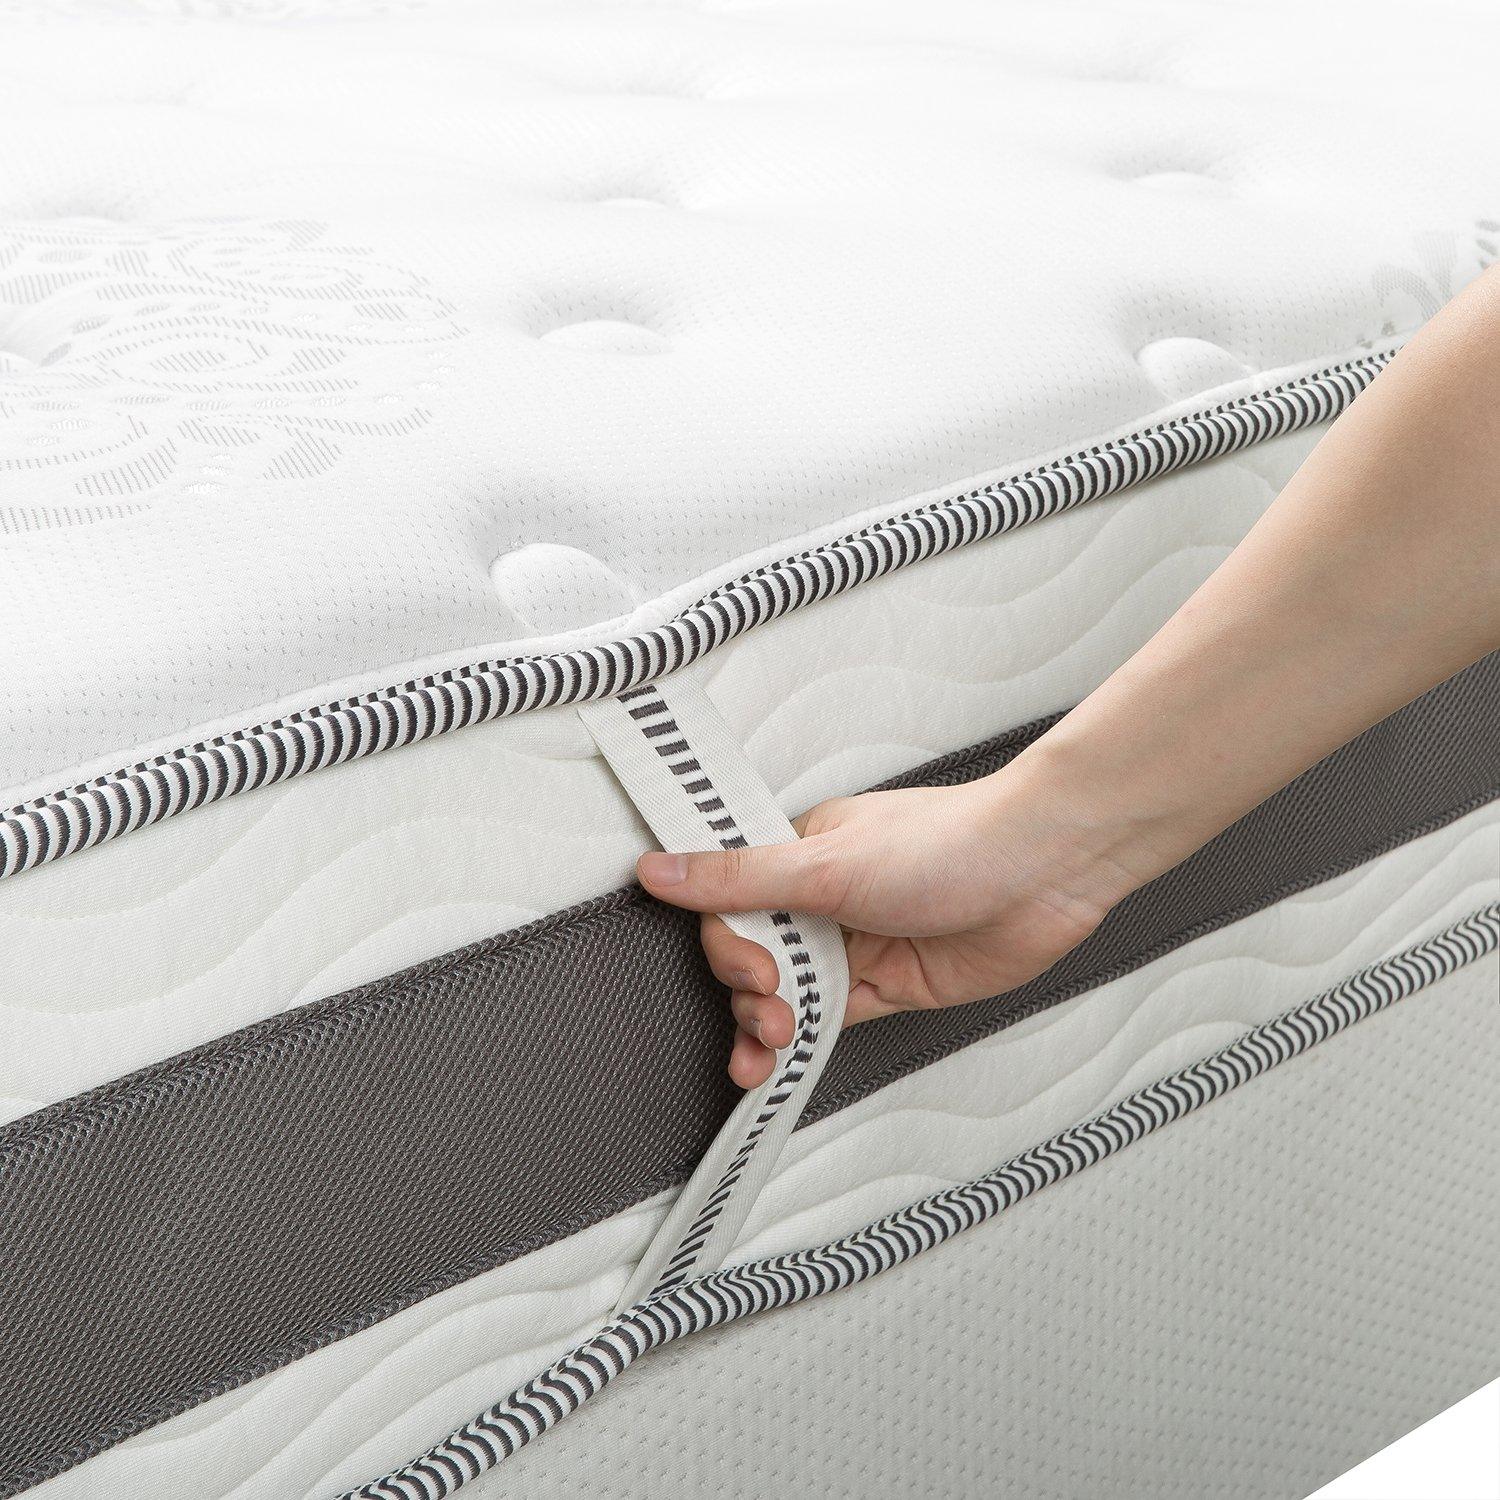 Should I consult a physician before buying a mattress